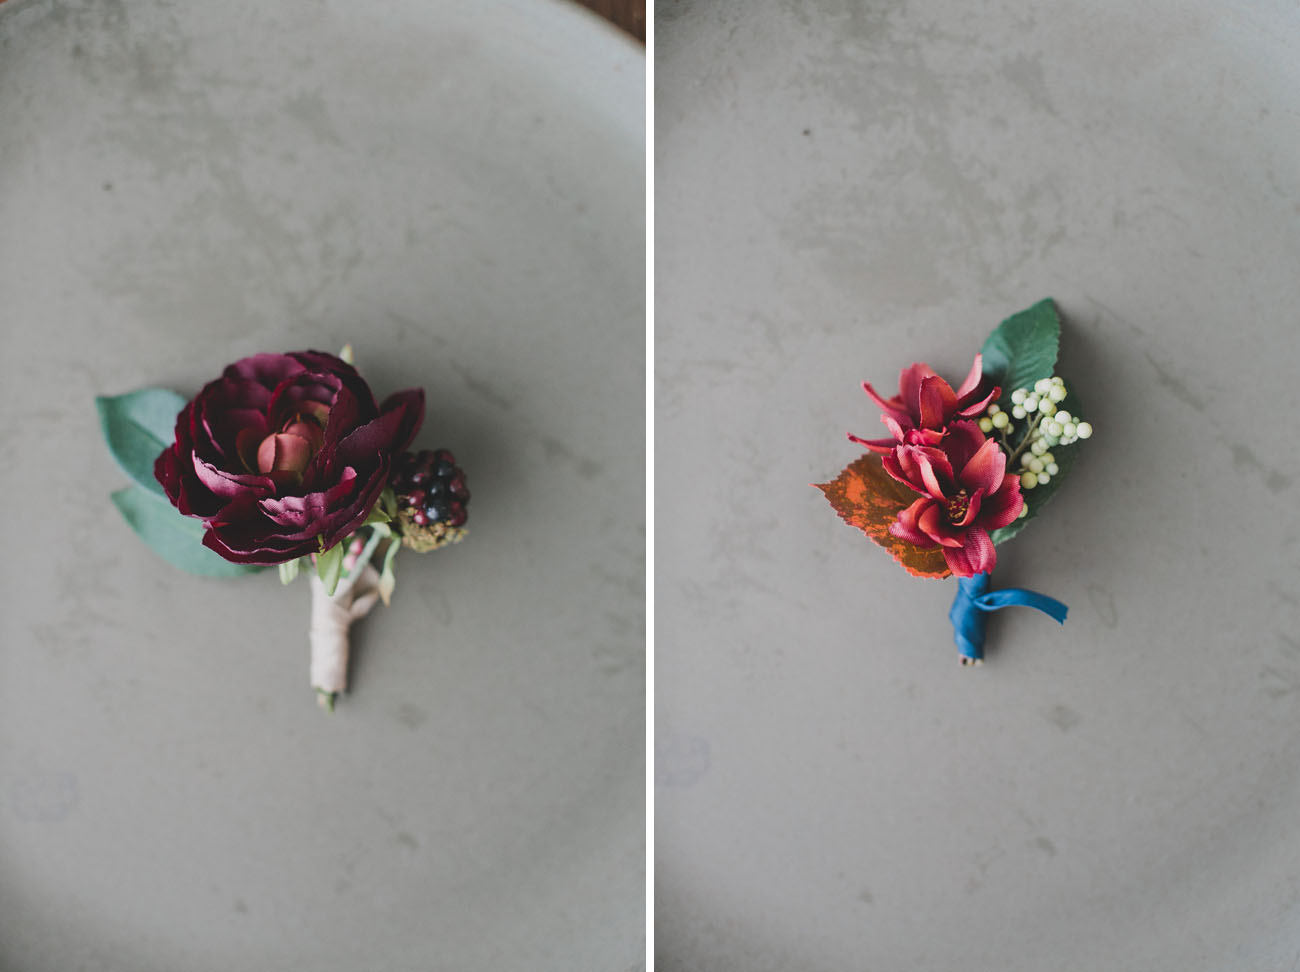 Diy silk flower boutonnieres green wedding shoes diy afloral boutonniere mightylinksfo Choice Image